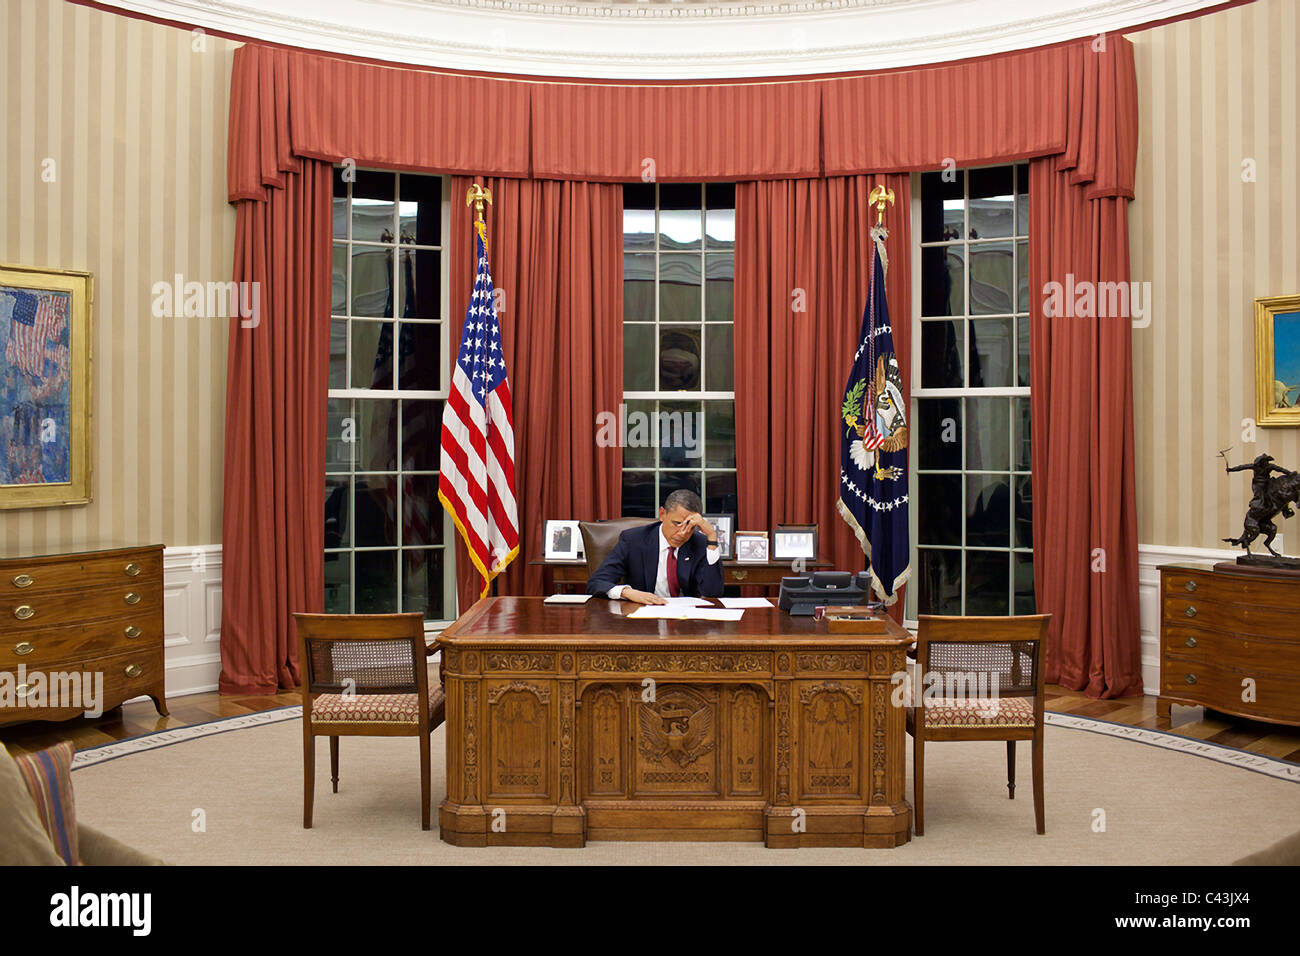 President Barack Obama edits his remarks in the Oval Office prior to a statement on Osama bin Laden - Stock Image